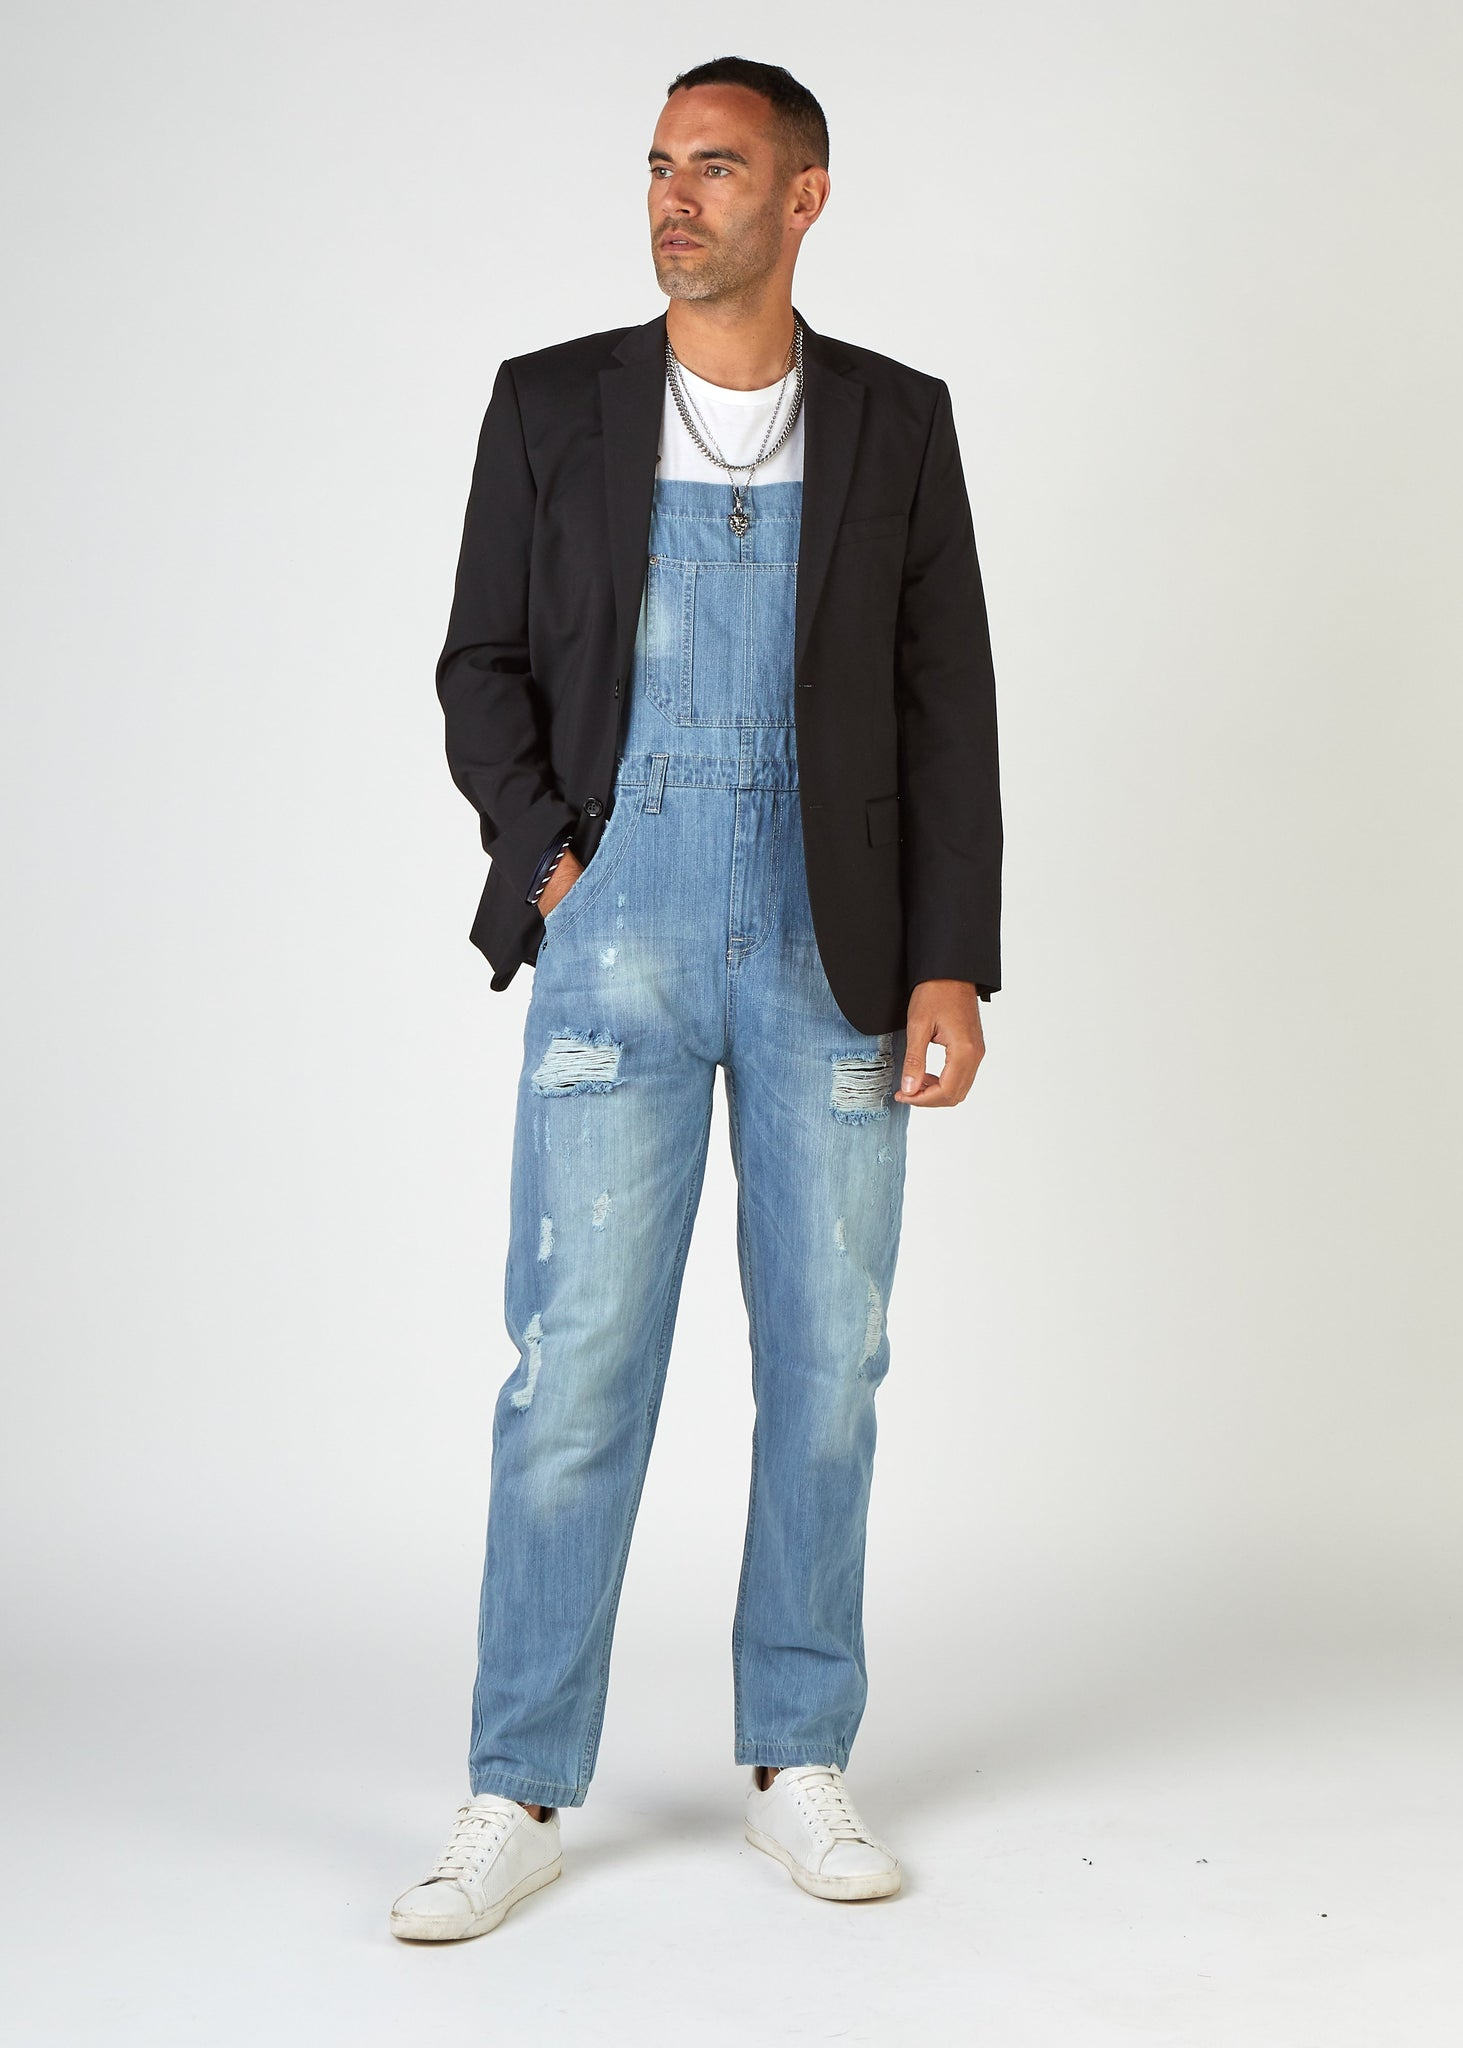 BERTIE Mens Loose Fit Bib Overalls Pale Wash with Rips